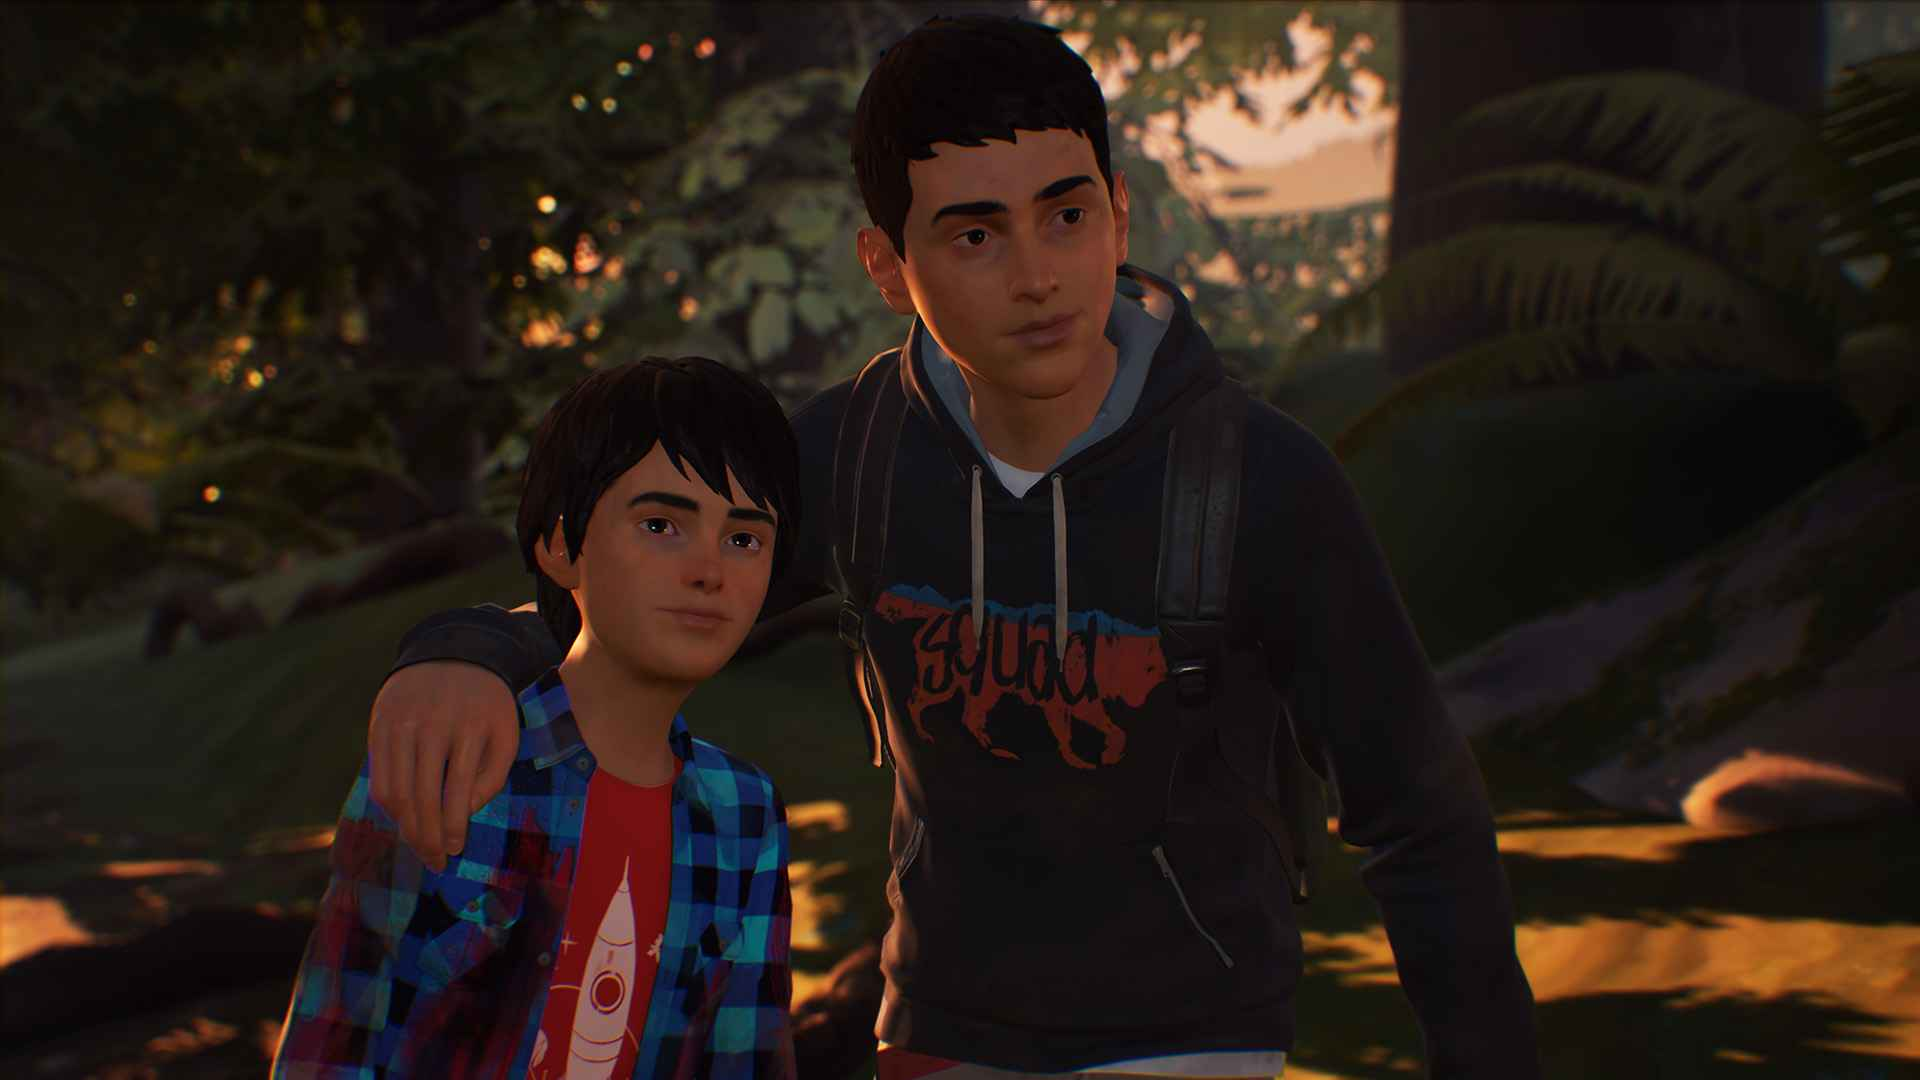 Life is Strange 2 is another game by Dontnod Entertainment.